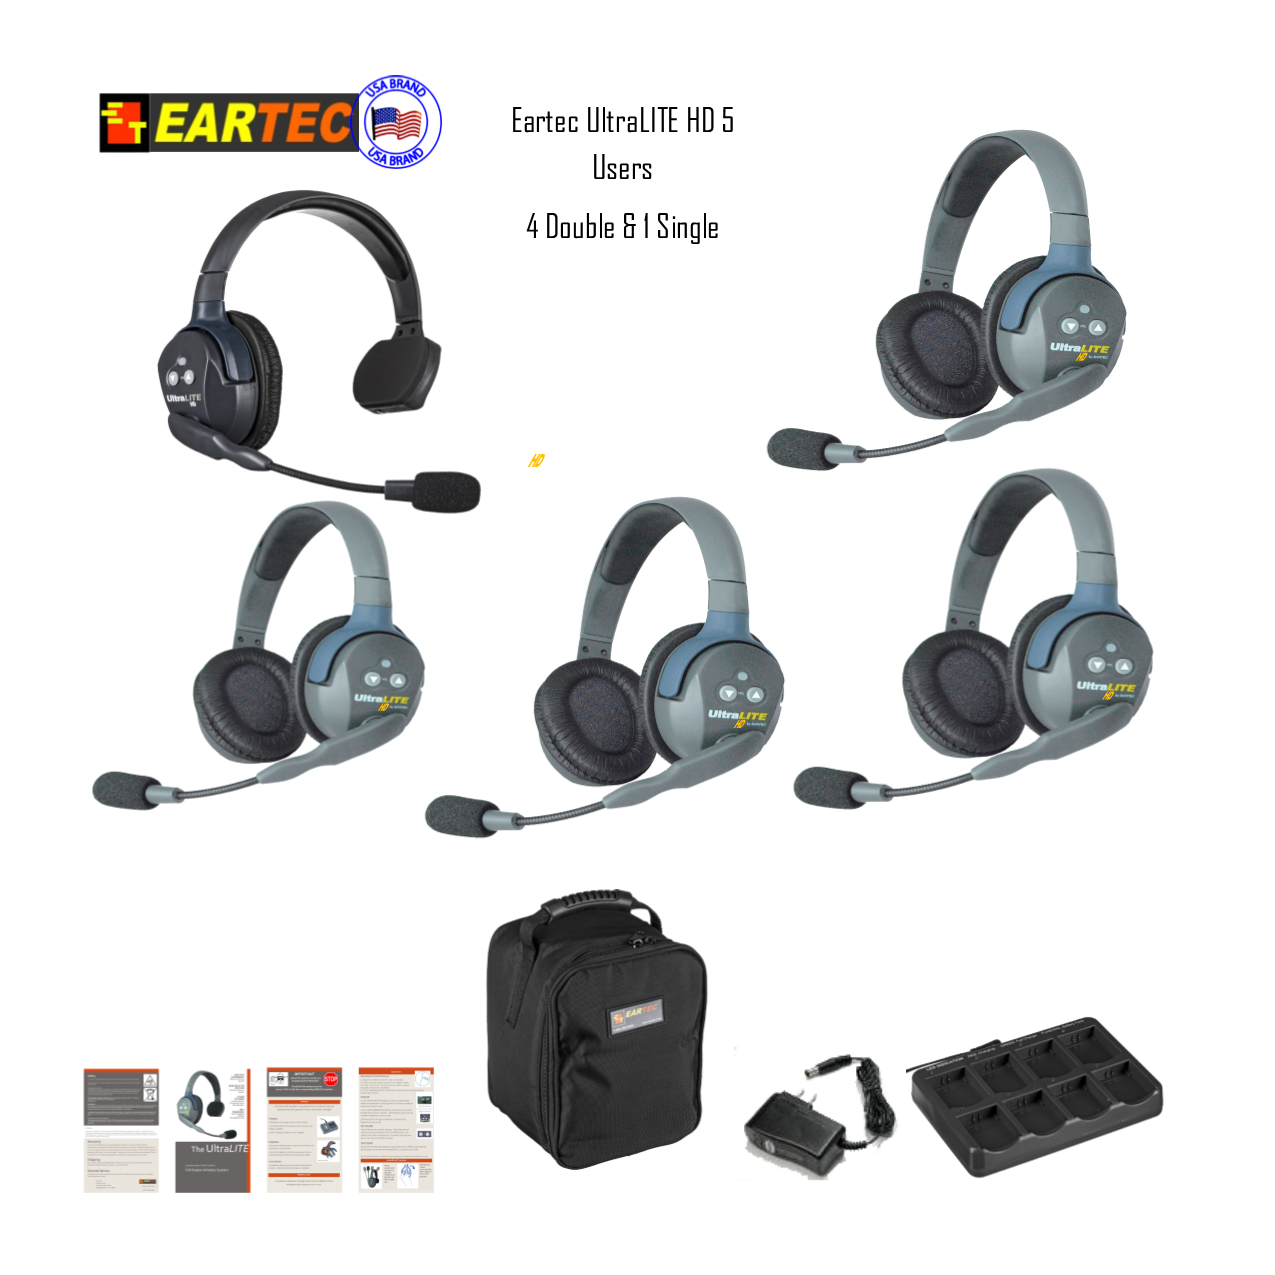 Eartec Ul514 Ultralite 5 Pers. System W/ 1 Single & 4 Double Headsets Intercom Systems Eartec